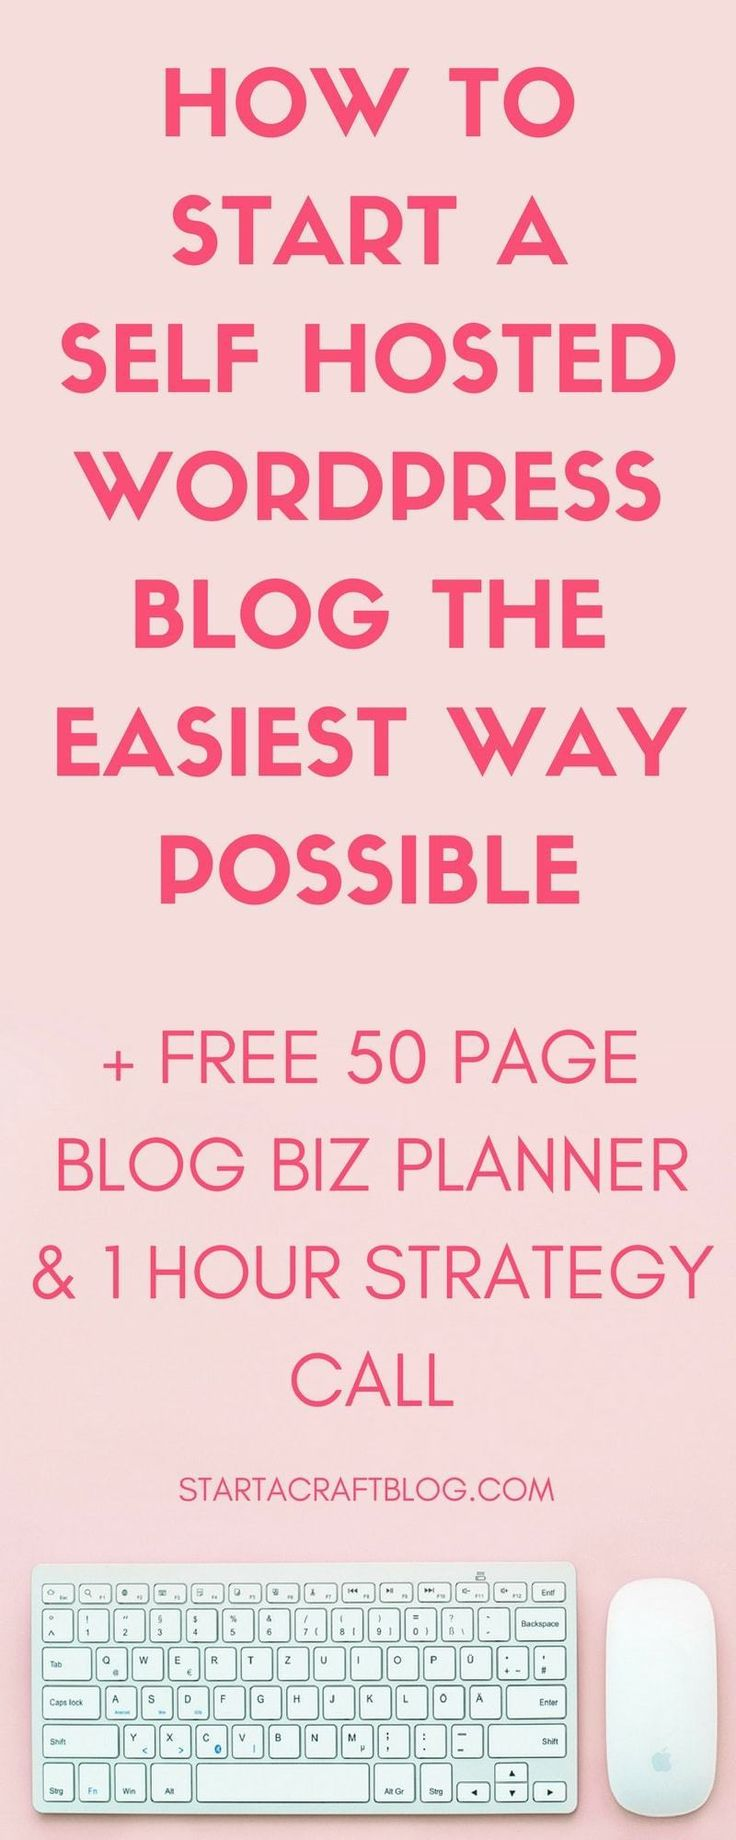 If you want to know how to start a blog in 2017 then you need to read this guide. Let me show you how to create a blog using Siteground shared hosting in under 5 minutes WITH a free video tutorial, Siteground discount coupons AND a how to start a blog checklist for you to download. Learn how to start a blog easily and get an answer to your question 'is siteground good?'. Siteground offers one of the best hosting plans around and the perfect platform to use for your wordpress org blog.